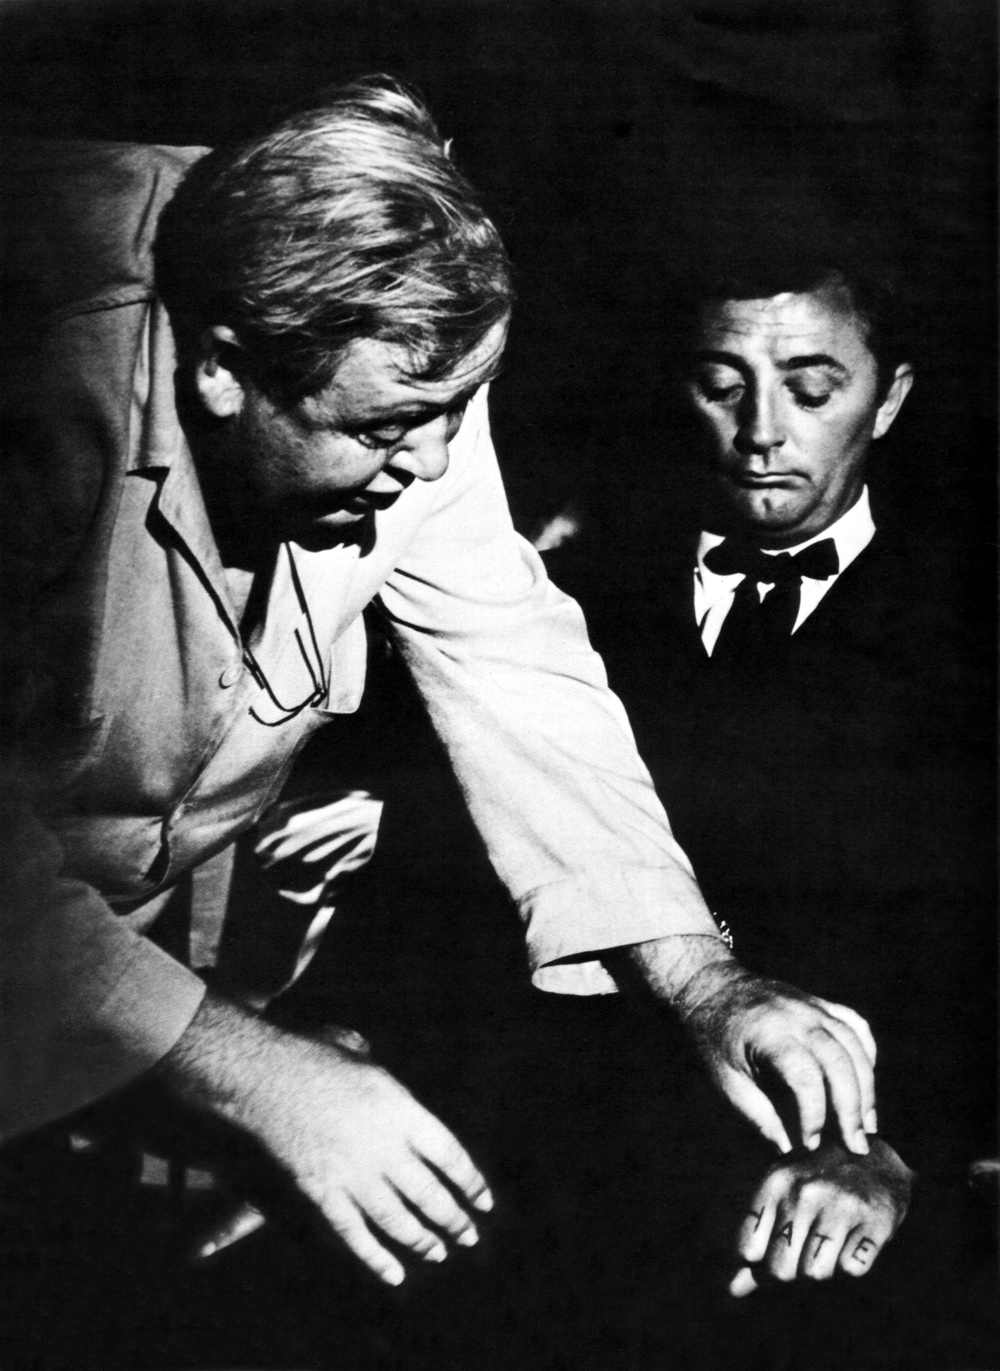 Charles Laughton-Annex   With Robert Mitchum (R) on the set of The Night of the Hunter,  Image Source